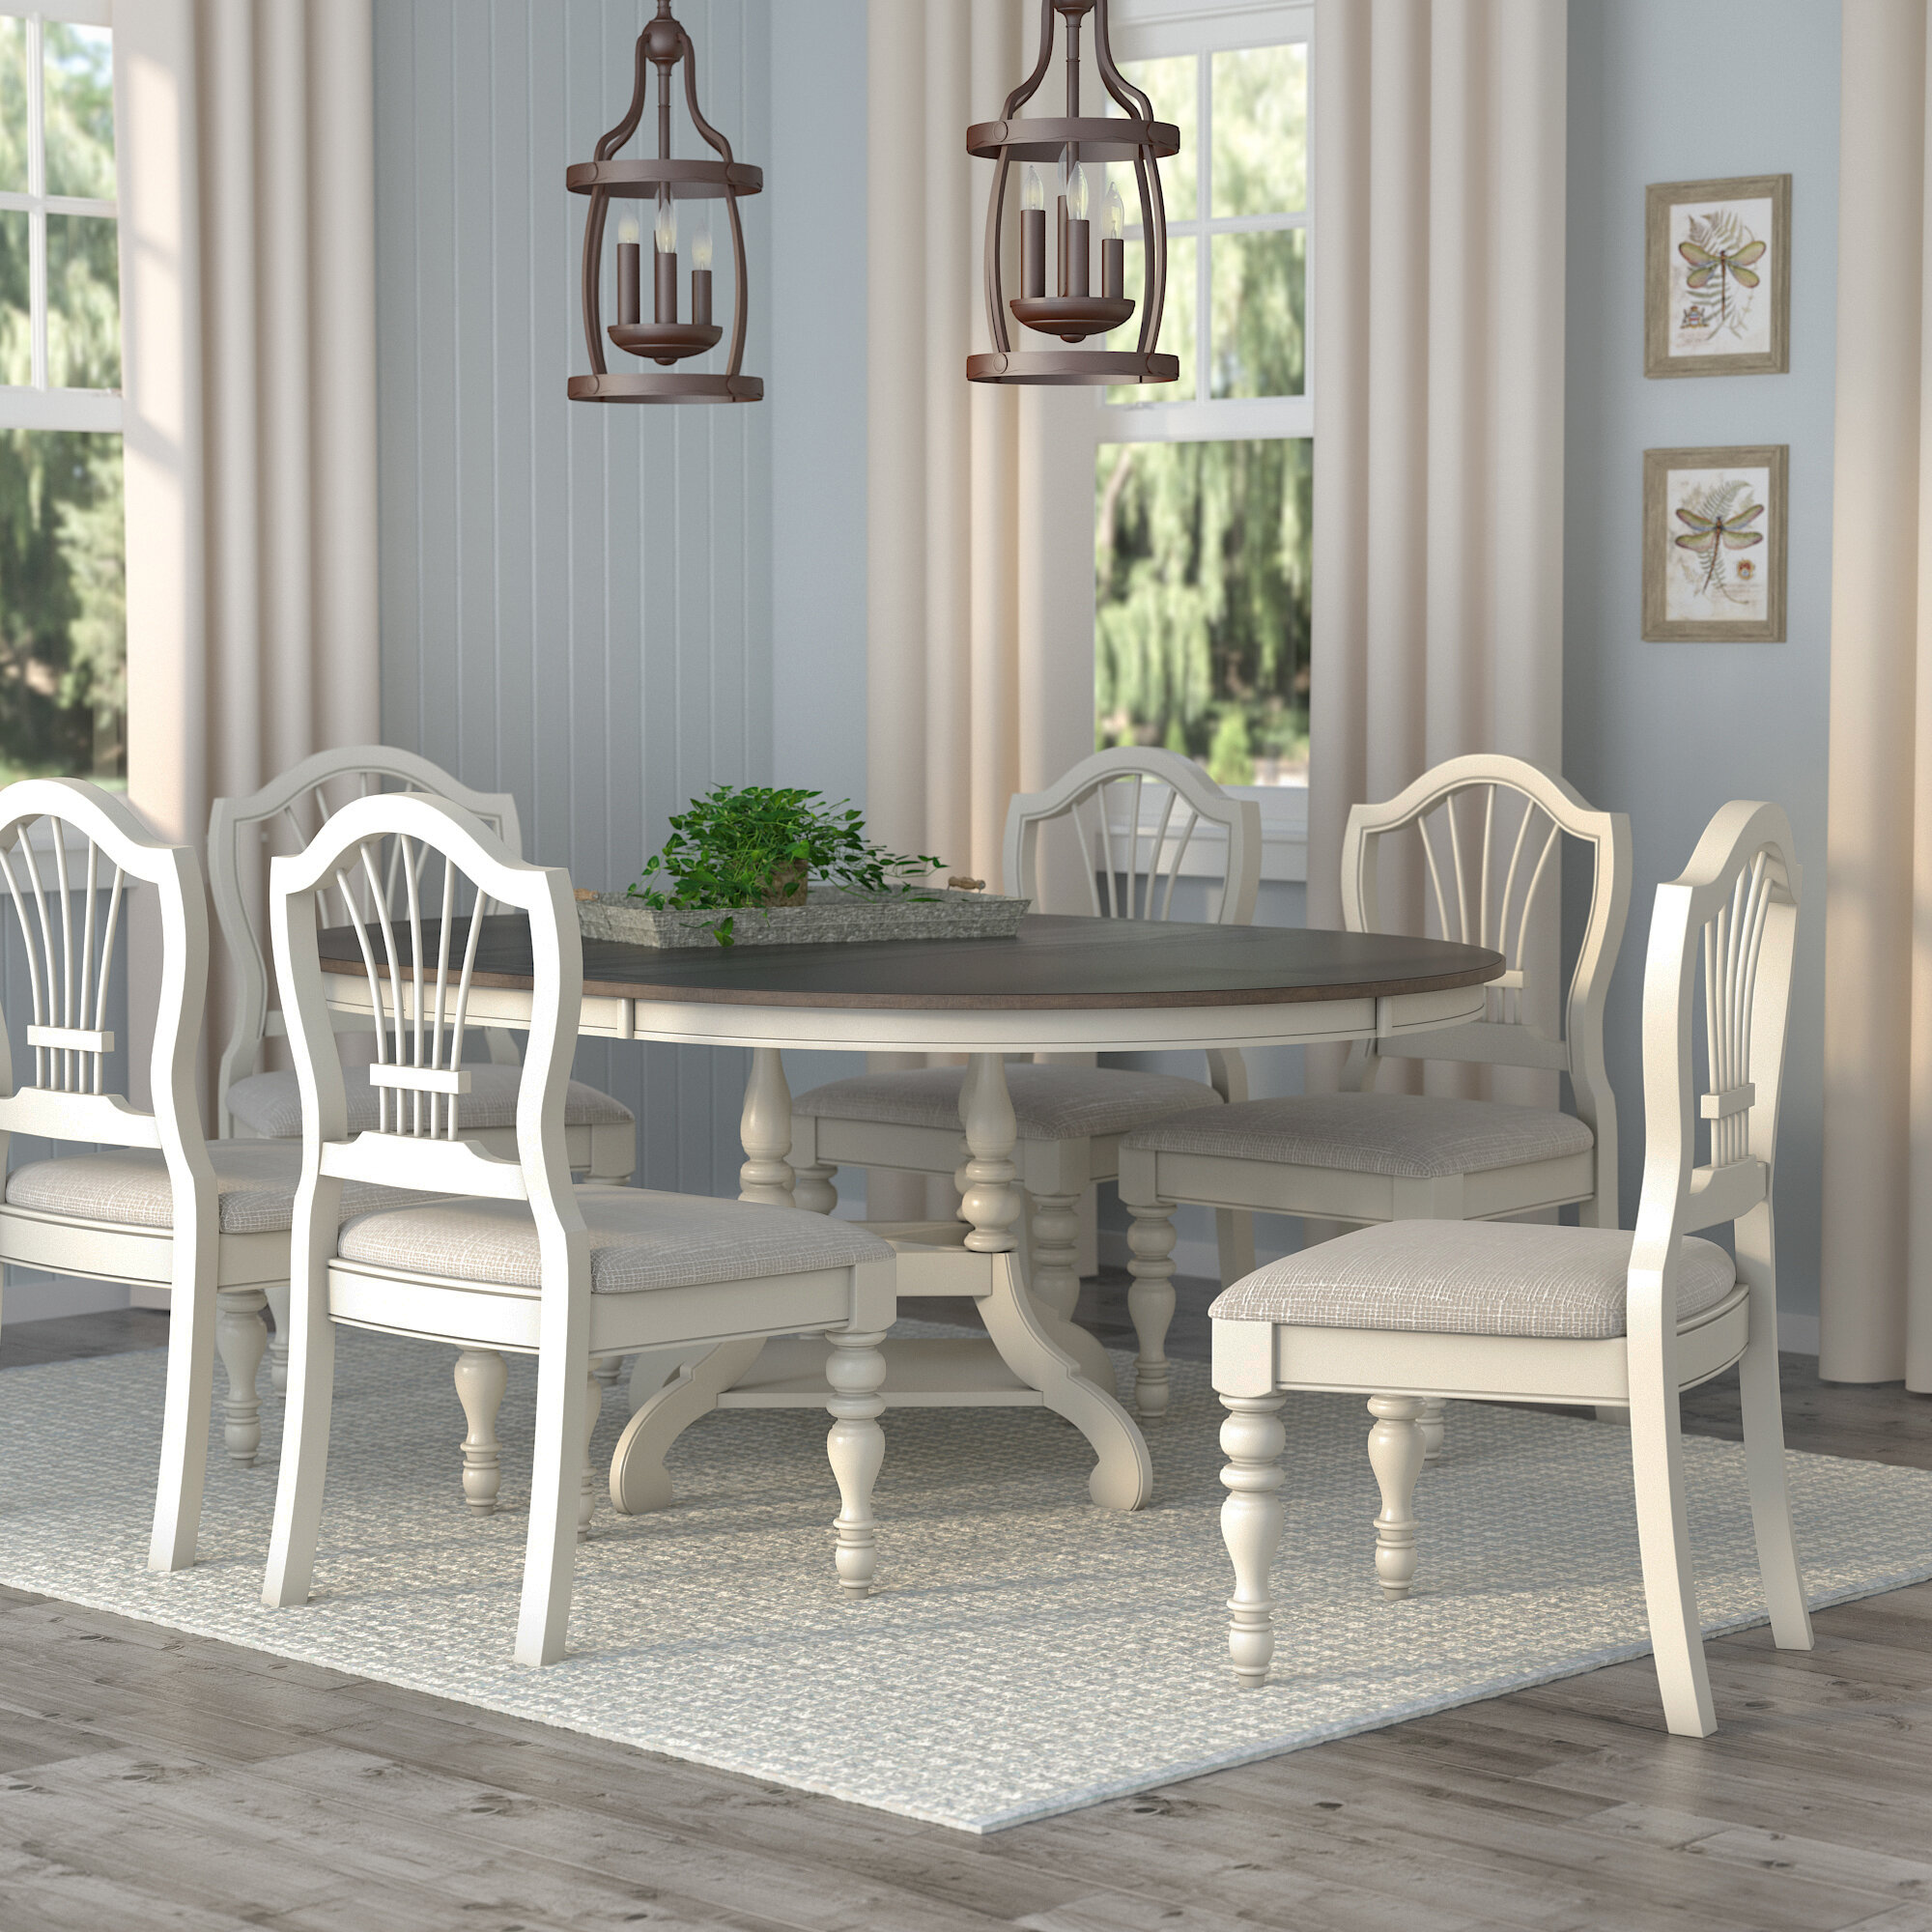 Lark manor alise 7 piece dining set reviews wayfair